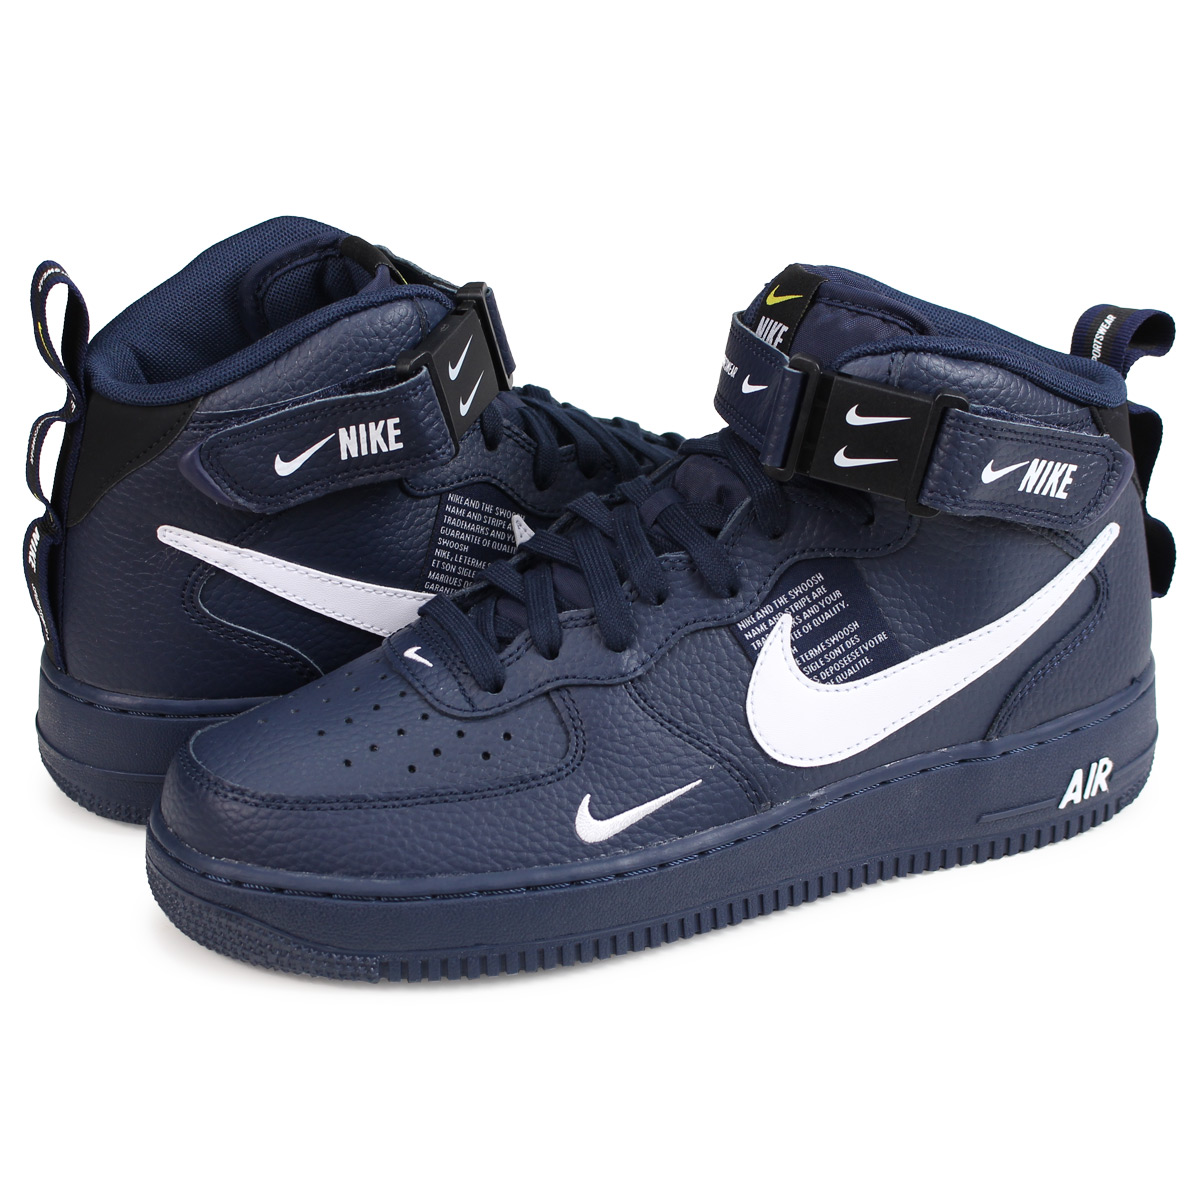 wholesale dealer 8d3af 2bcf8 Nike NIKE air force 1 sneakers men AIR FORCE 1 MID 07 LV8 navy 804,609-403  [load planned Shinnyu load in reservation product 11/19 containing] [1811]